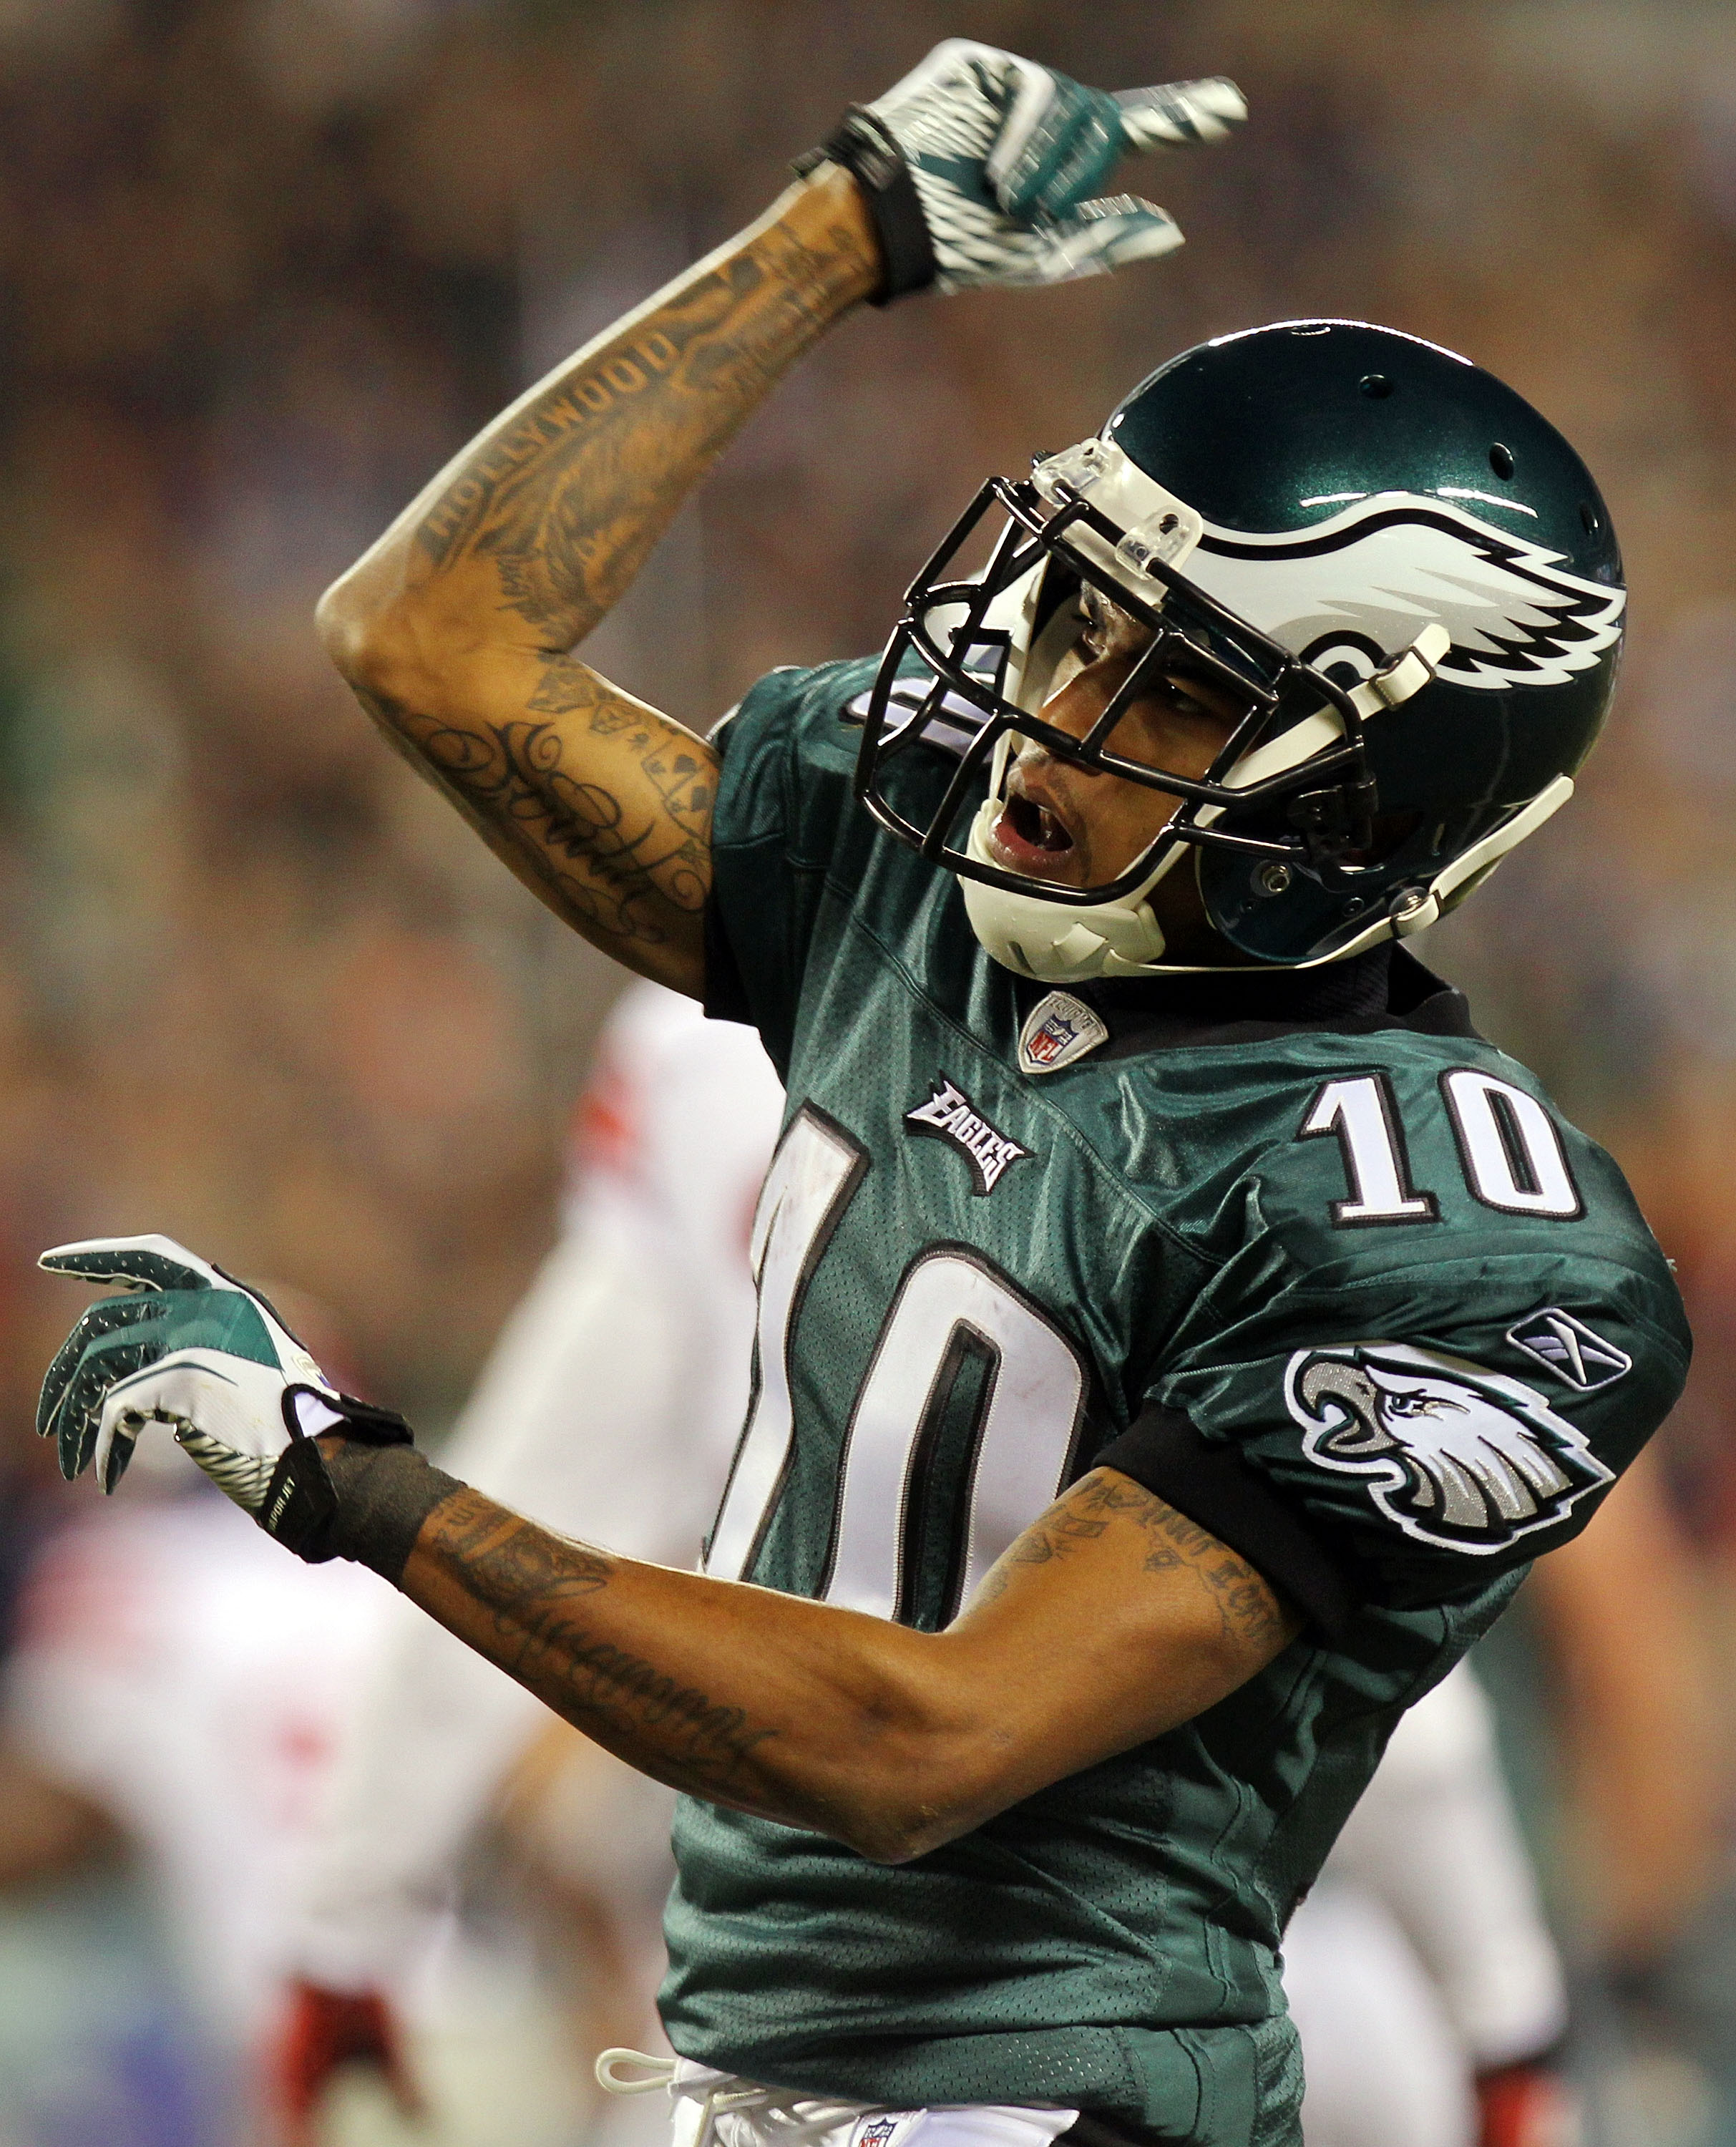 PHILADELPHIA - NOVEMBER 21:  DeSean Jackson #10 of the Philadelphia Eagles celebrates after a first down against the New York Giants at Lincoln Financial Field on November 21, 2010 in Philadelphia, Pennsylvania.  (Photo by Nick Laham/Getty Images)